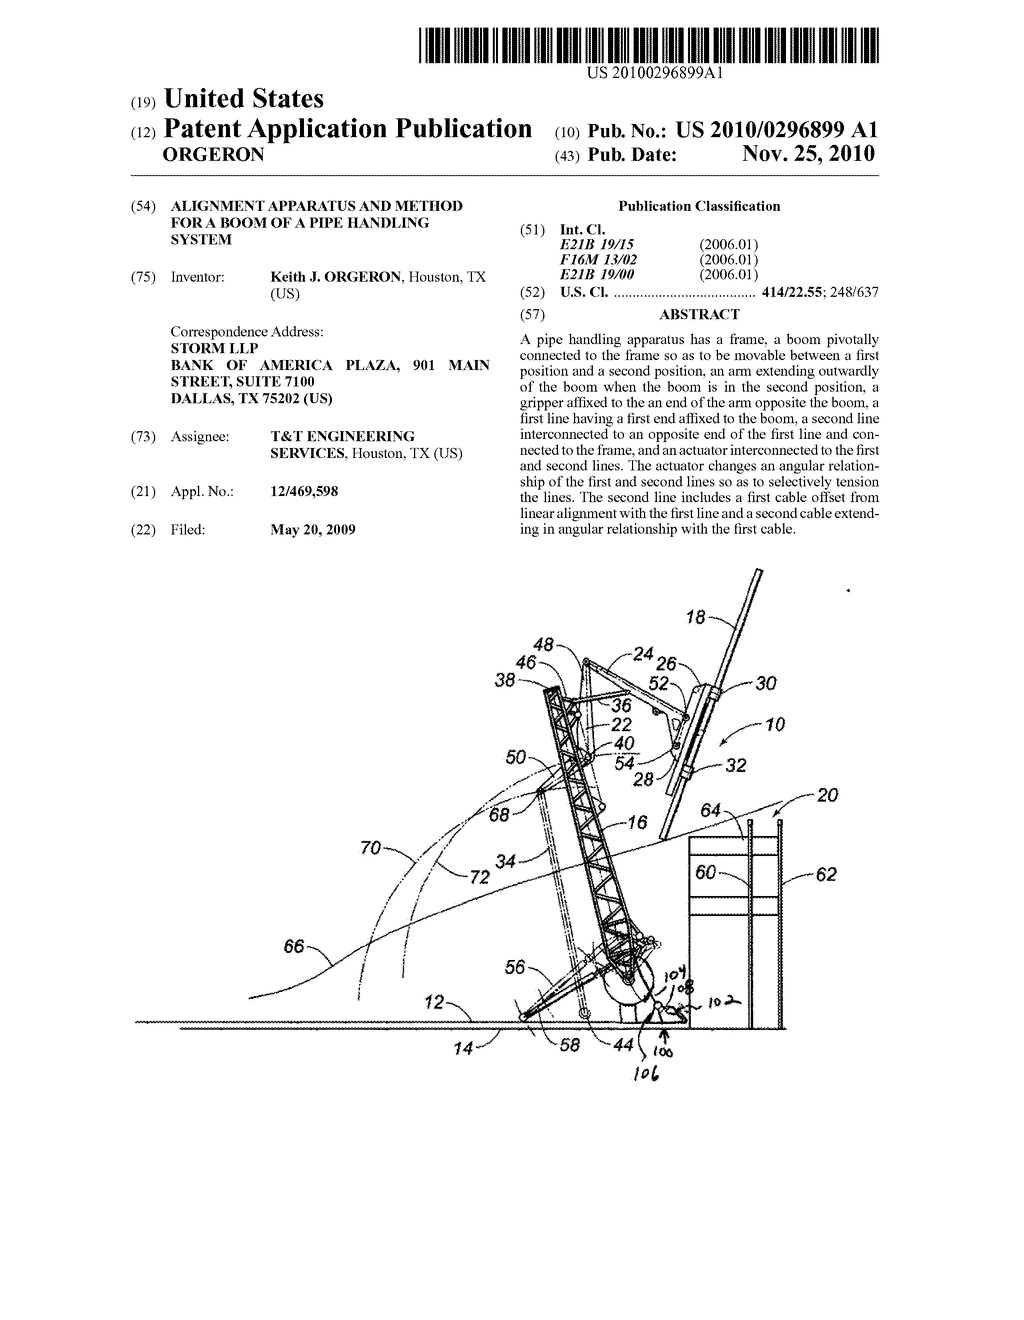 ALIGNMENT APPARATUS AND METHOD FOR A BOOM OF A PIPE HANDLING SYSTEM - diagram, schematic, and image 01